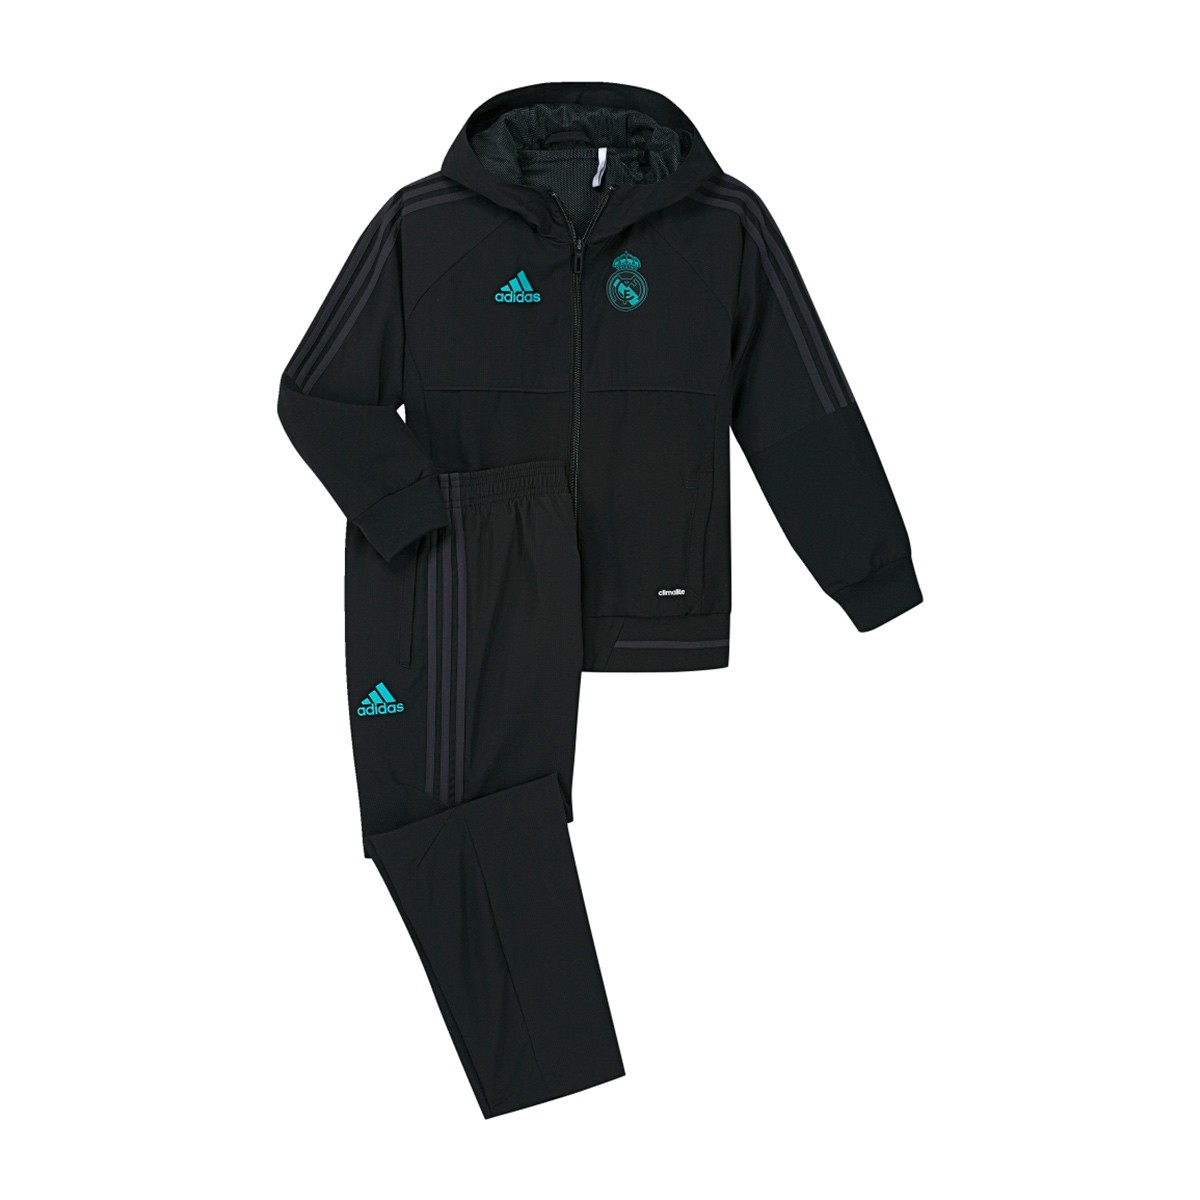 57a47cc73981e Tracksuit adidas Kids Real Madrid 2017-2018 Pre-match Black-Solid ...